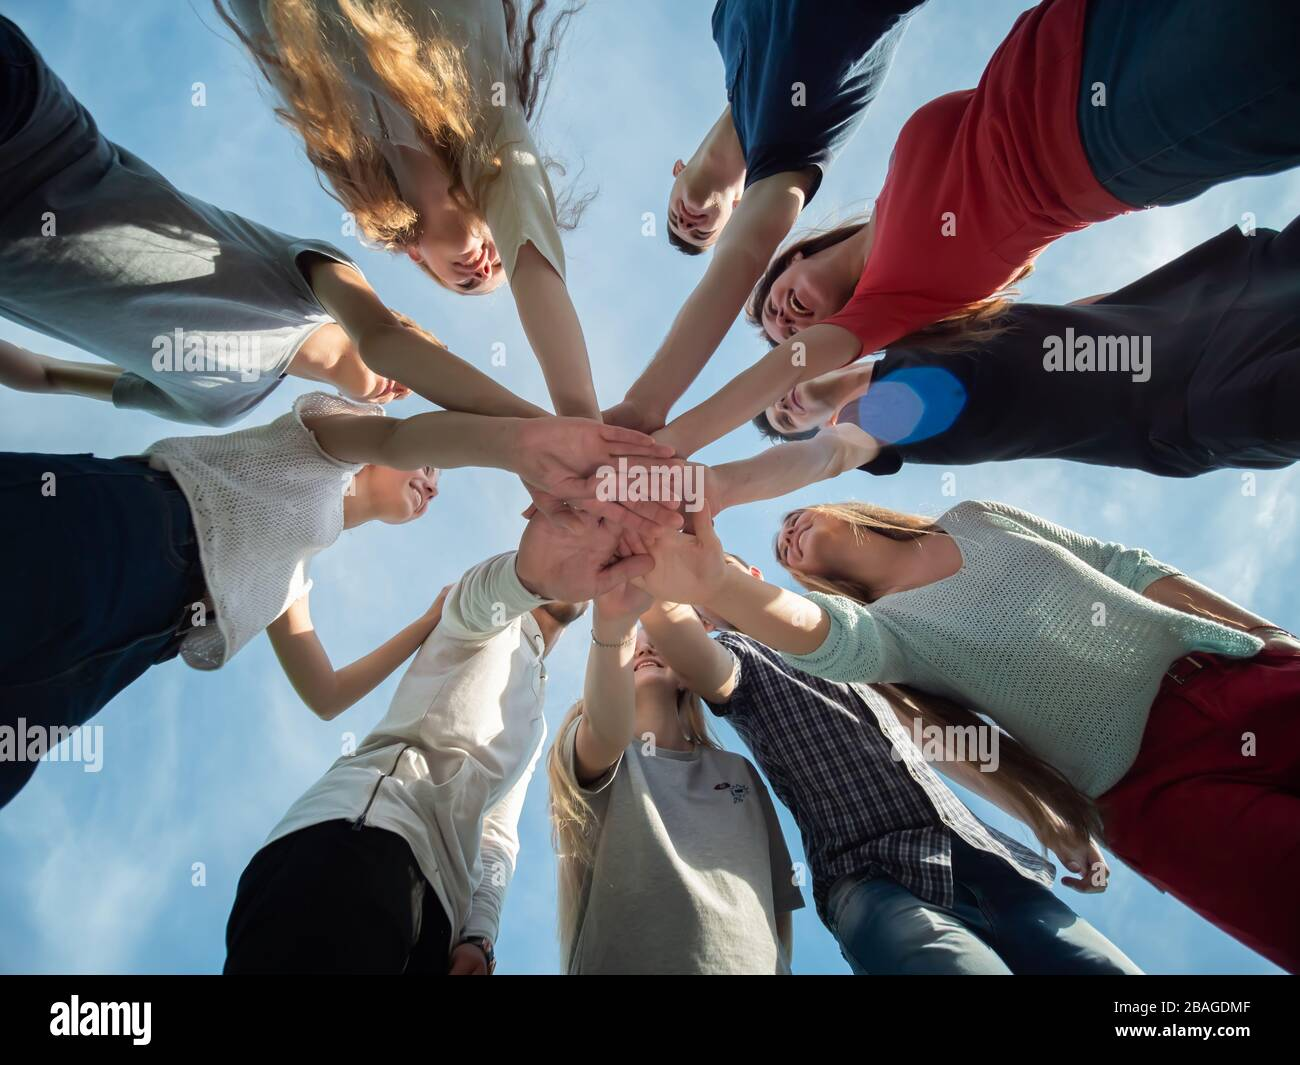 A friendly company of friends join hands as a sign of joint business. Stock Photo